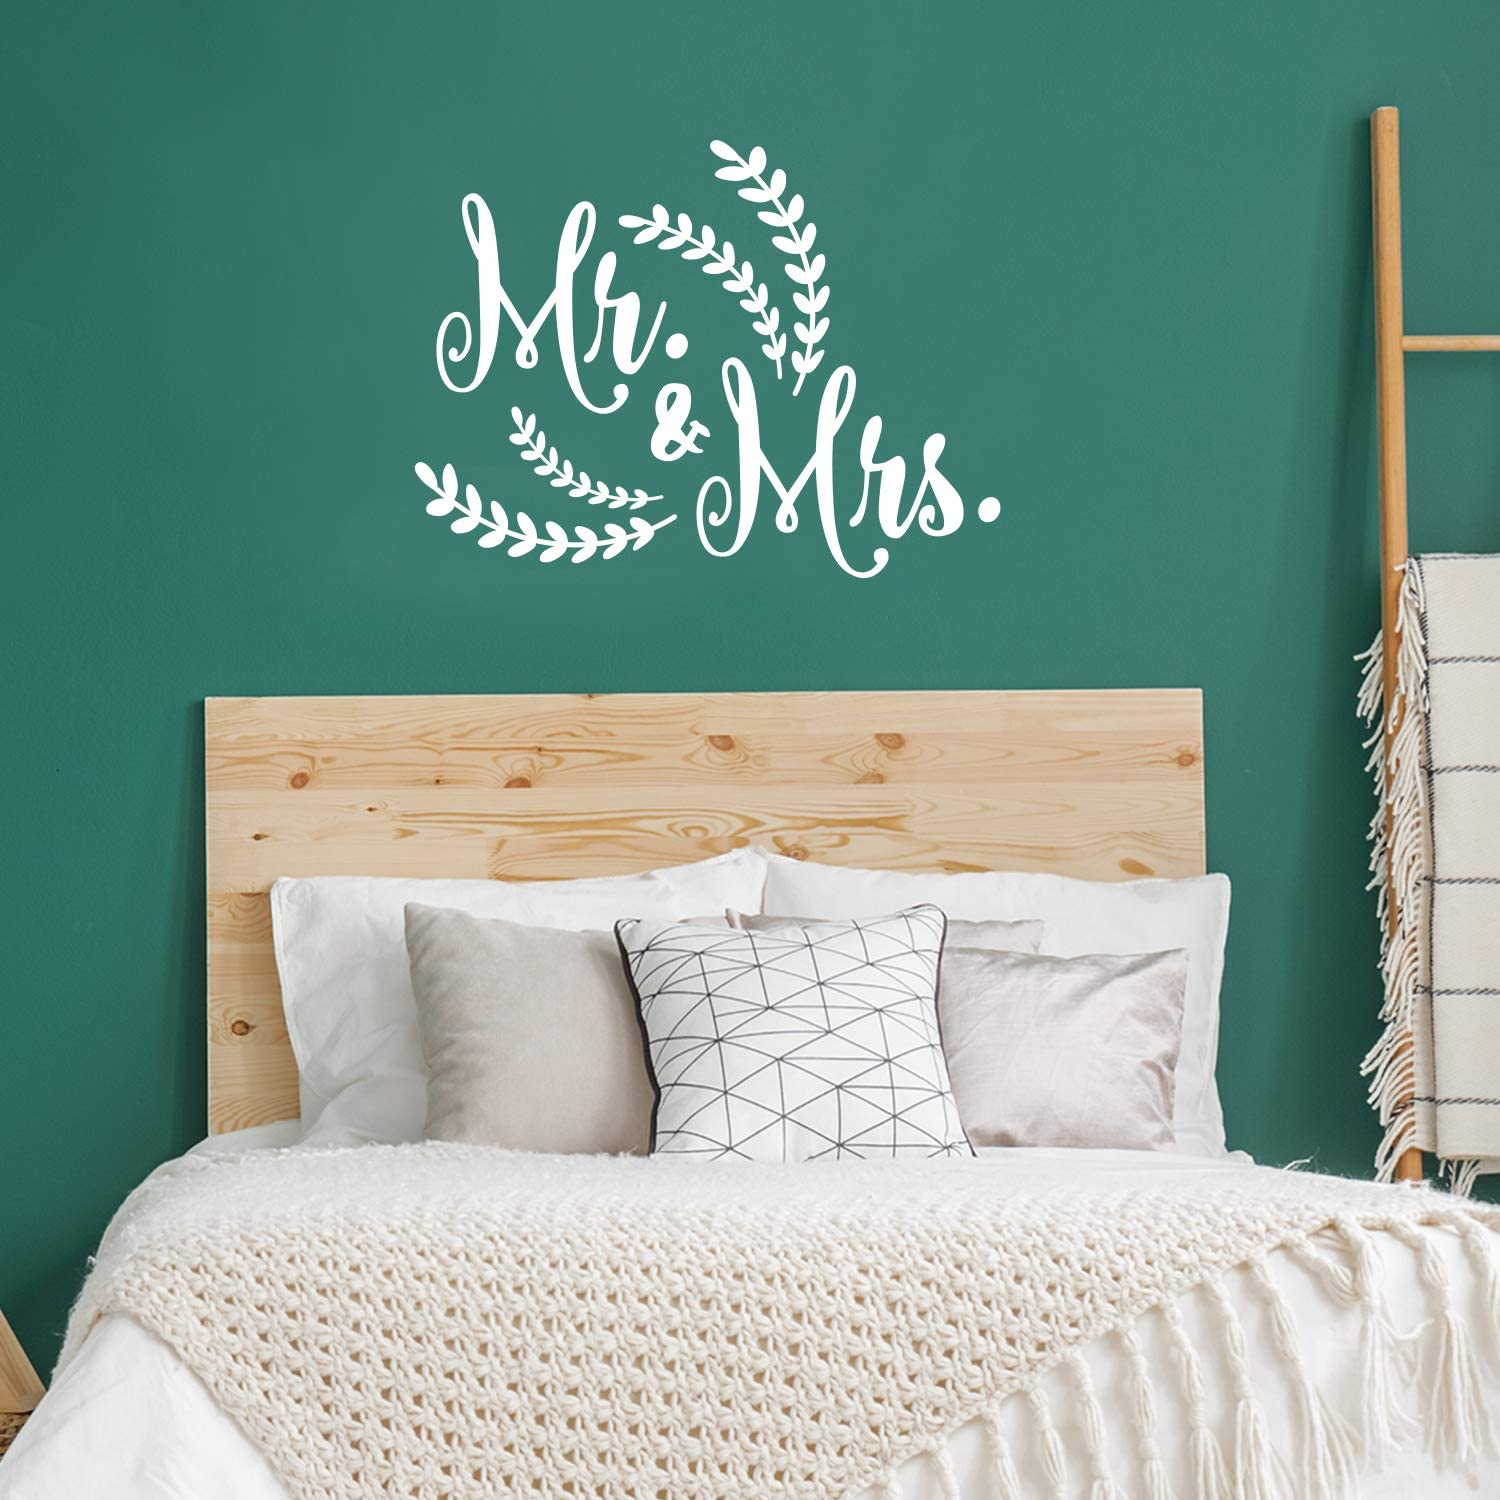 "Valentines Day Vinyl Wall Art Decal - Mr & Mrs - 21"" x 28"" - Modern Inspirational Cute Quote Sticker for Family Home Office Living Room Couple Bedroom Entryway Patio Decor (White)"